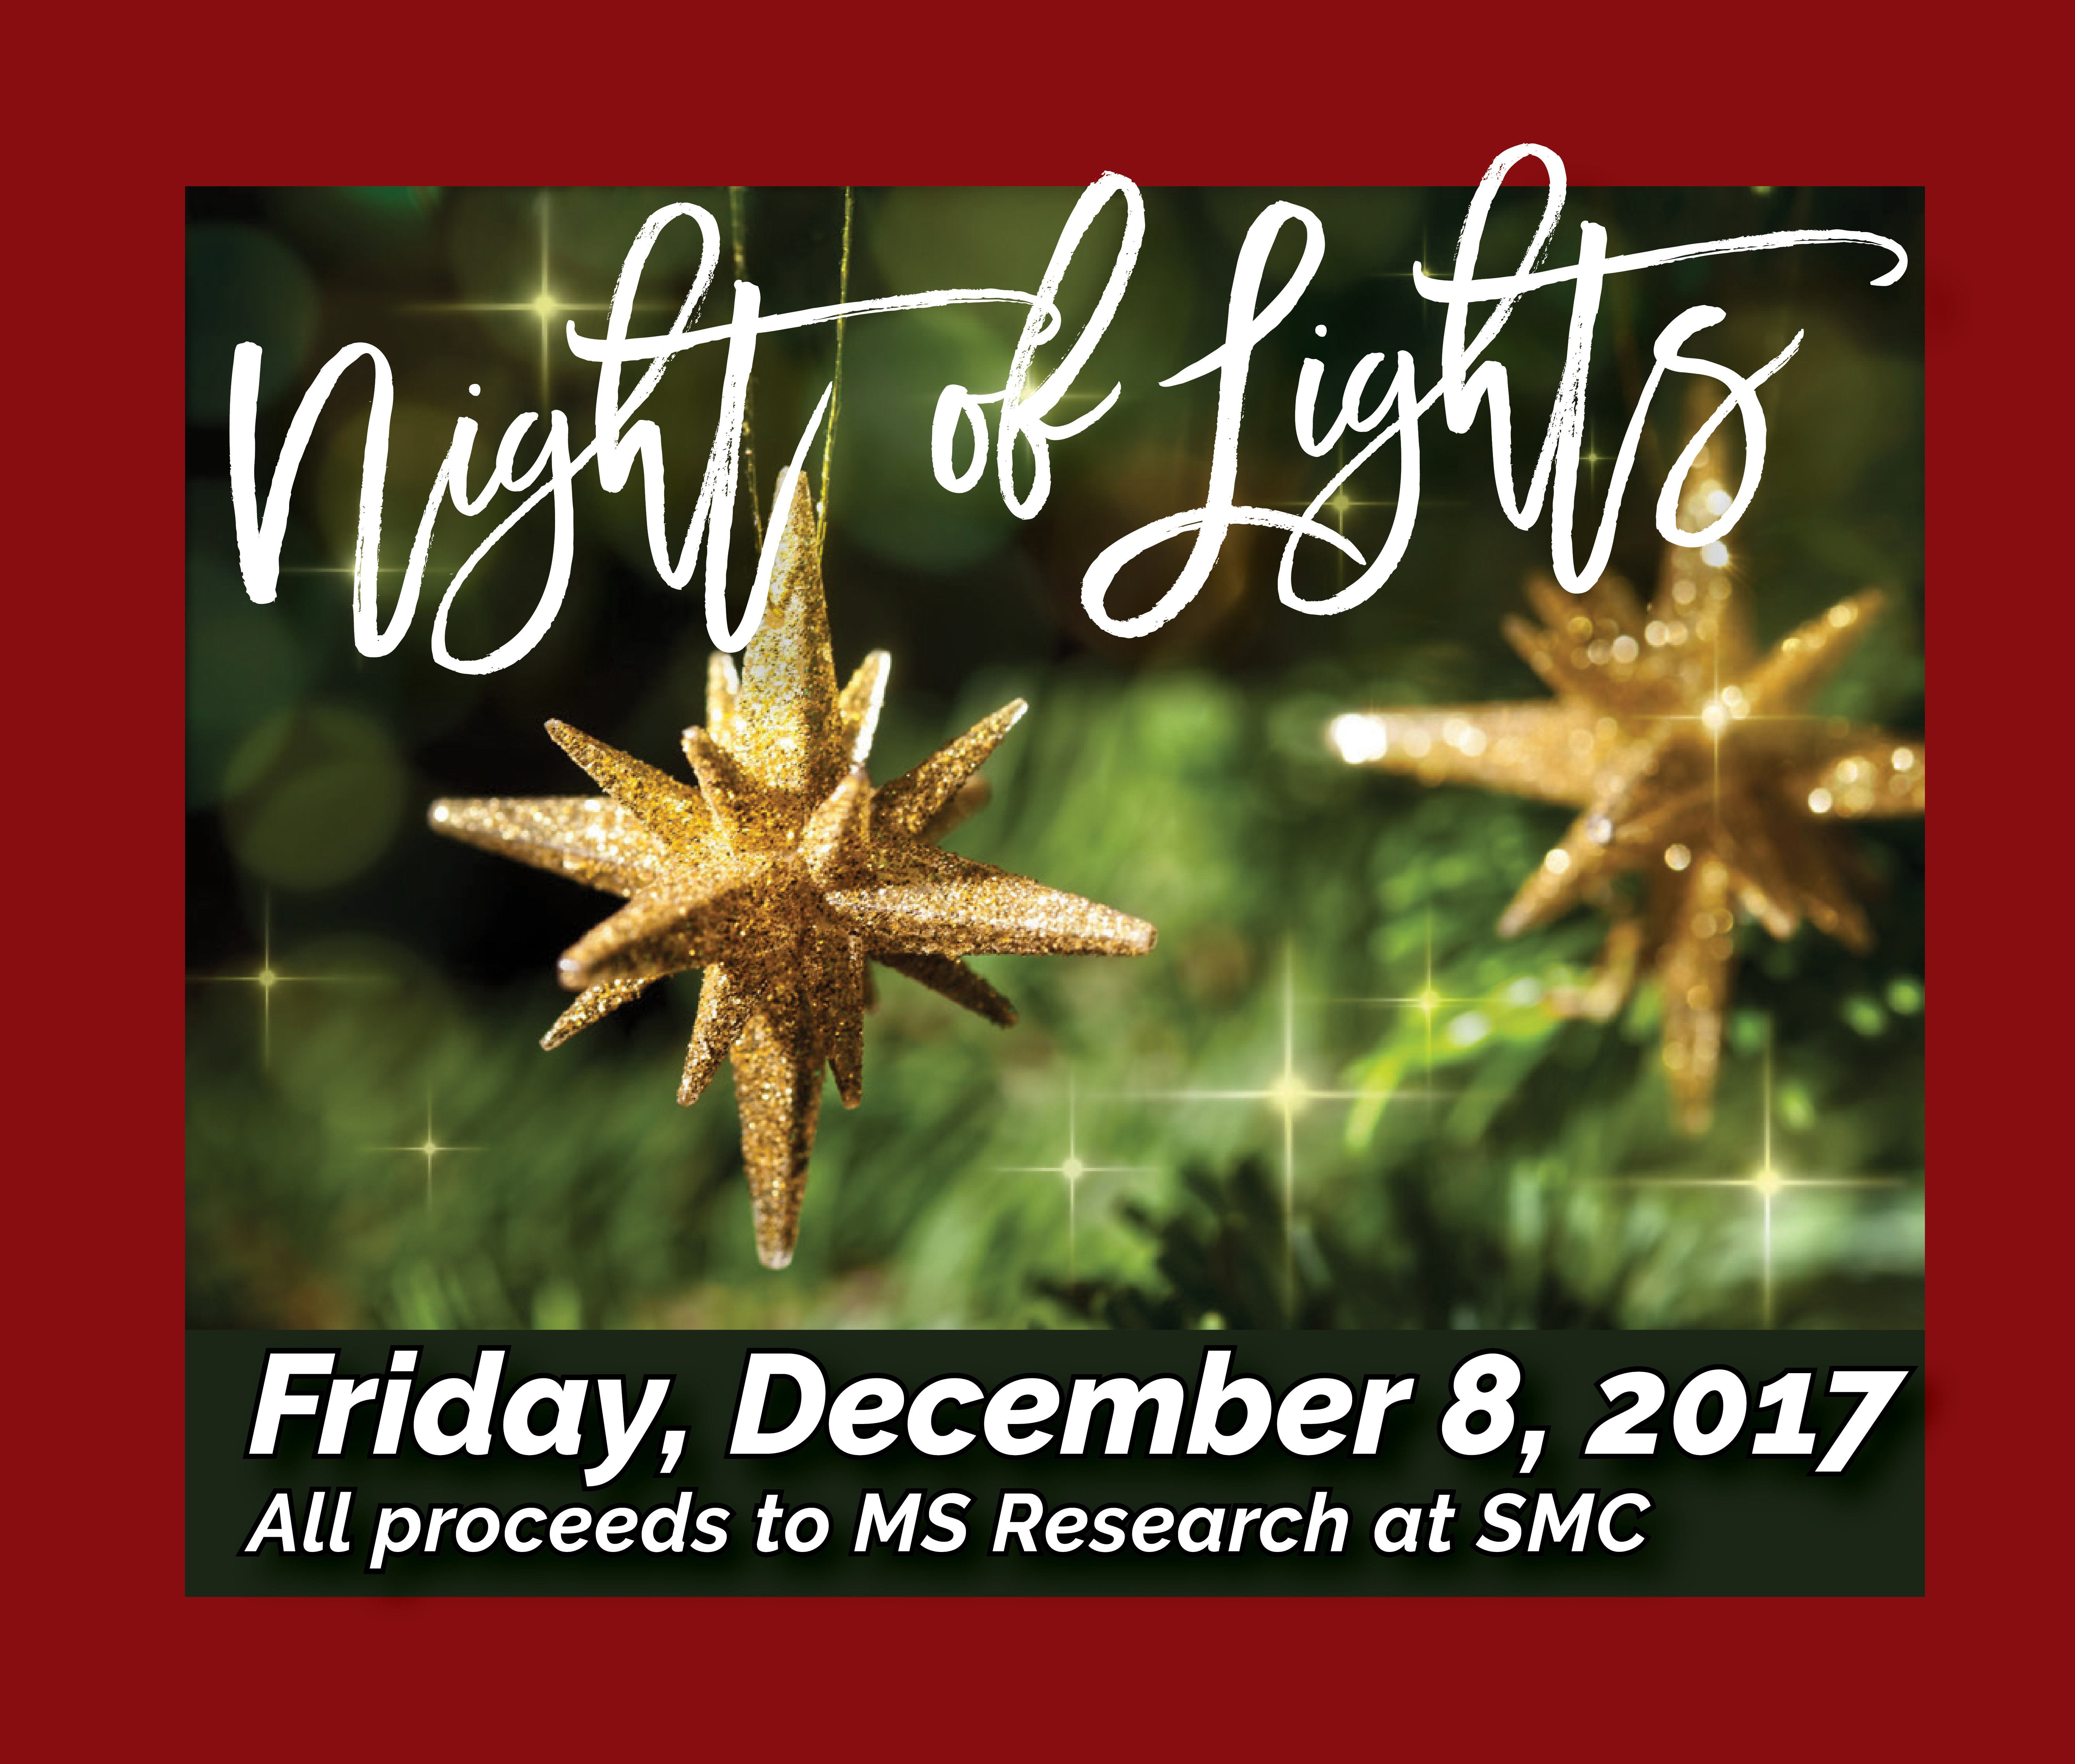 Don't forget to get the friends together for the Christmas Light Bus Tour!